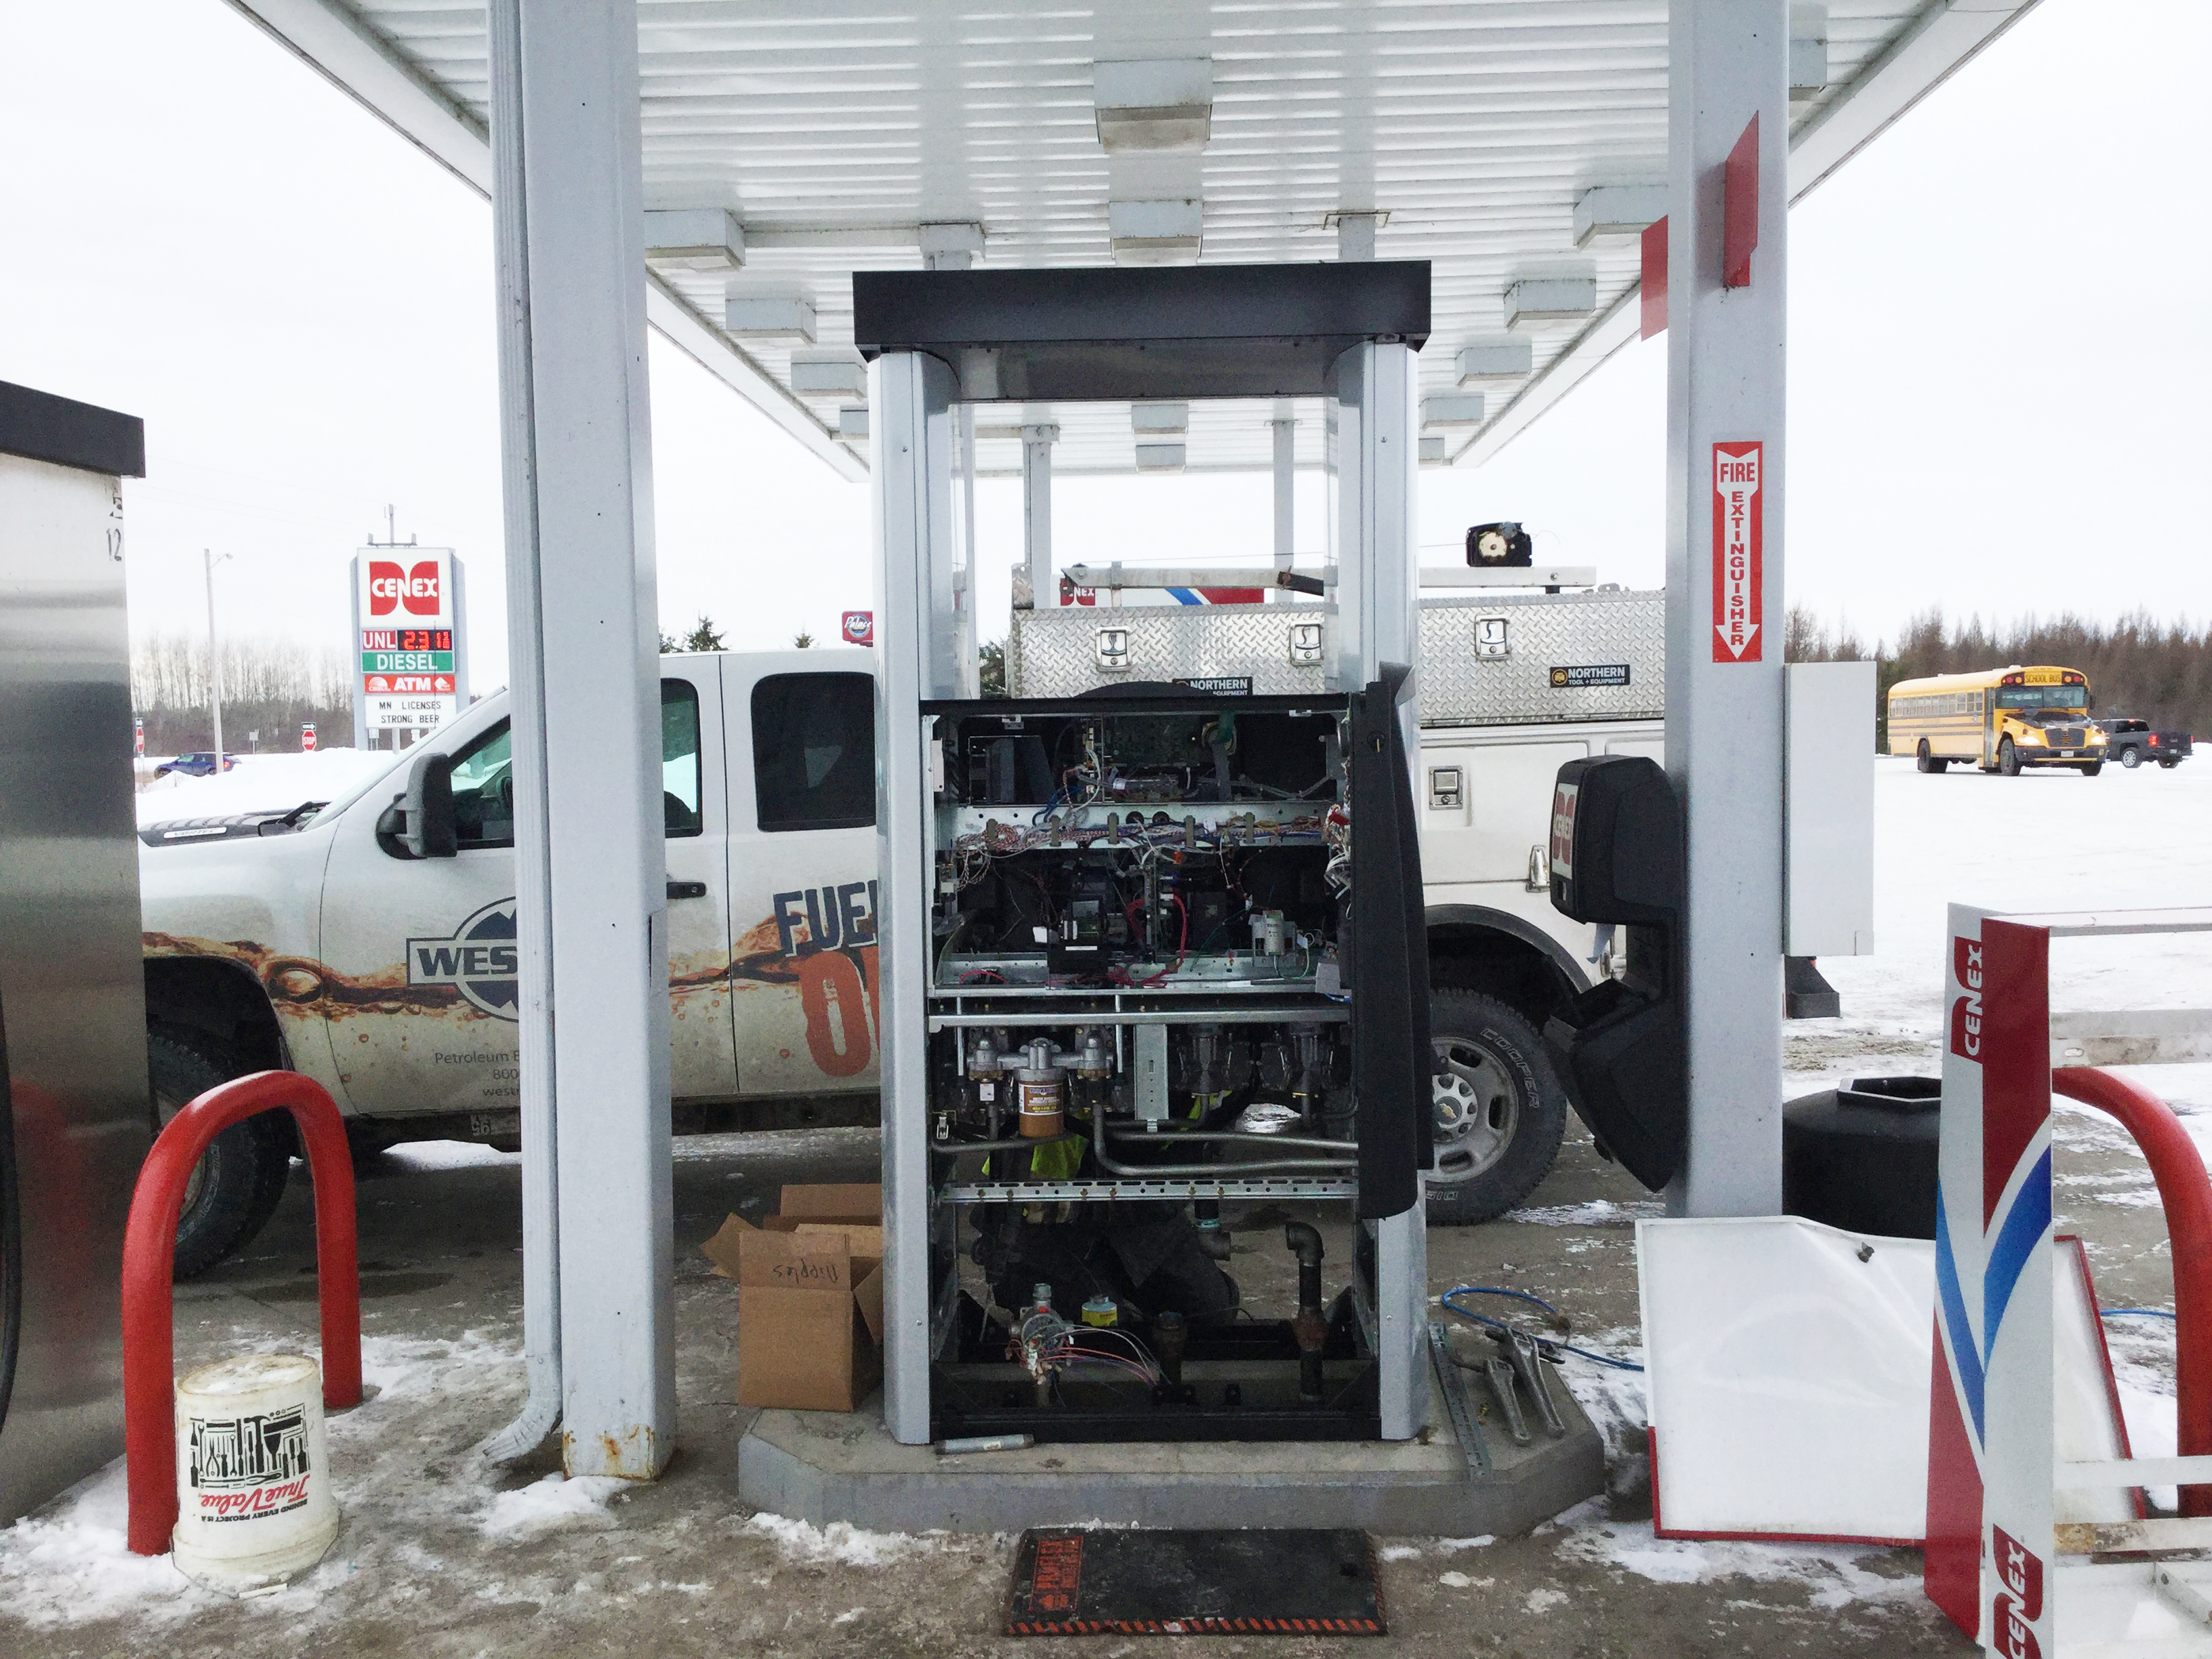 Service techs coordinate with local electricians to complete the rewiring necessary to install new fuel pumps.